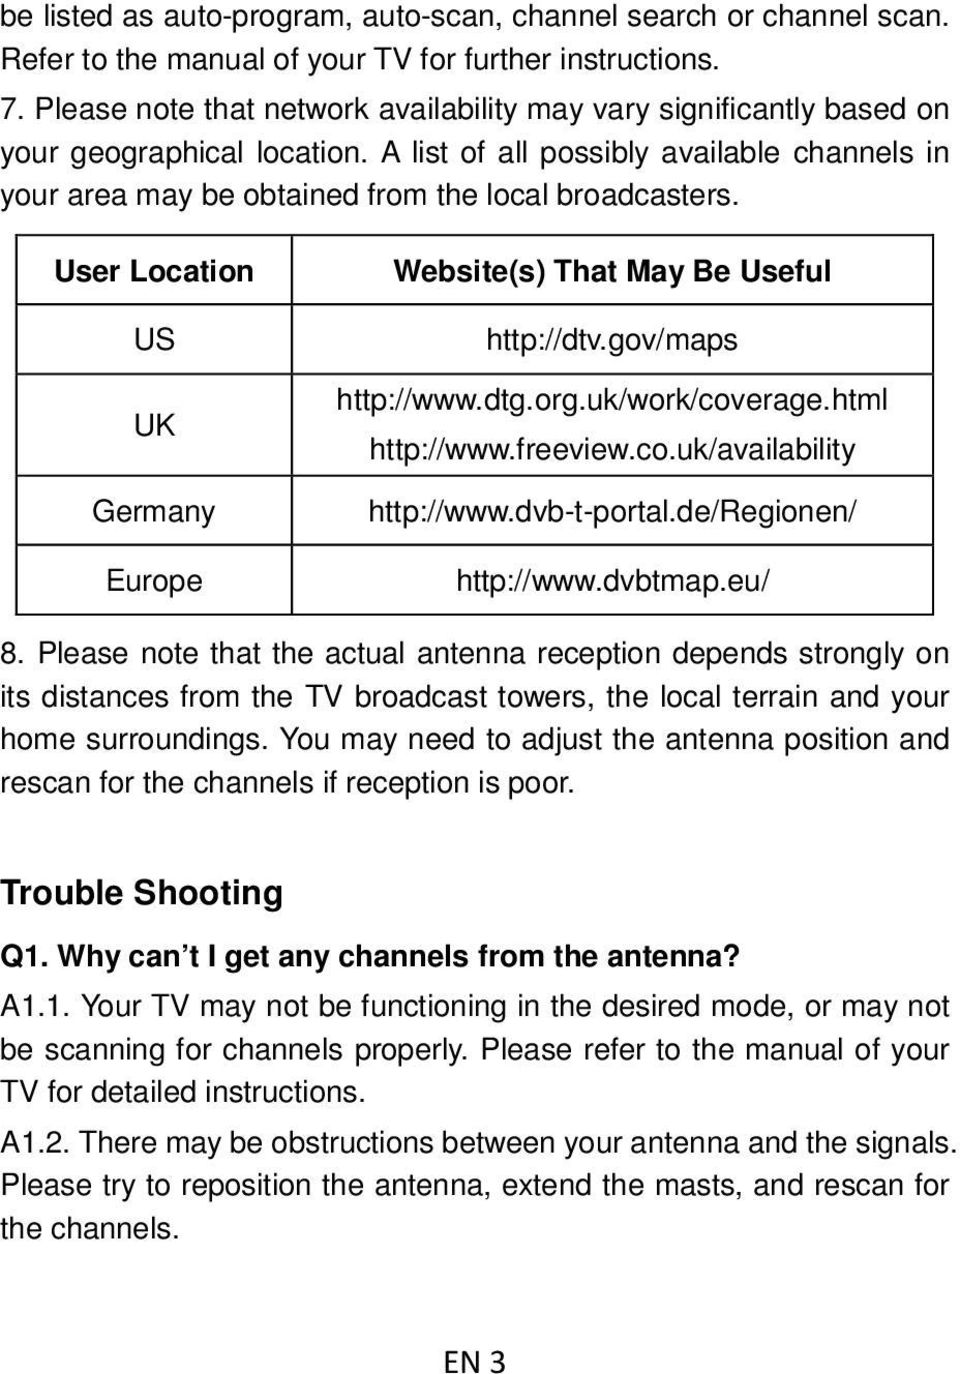 User Location US UK Germany Europe Website(s) That May Be Useful http://dtv.gov/maps http://www.dtg.org.uk/work/coverage.html http://www.freeview.co.uk/availability http://www.dvb-t-portal.